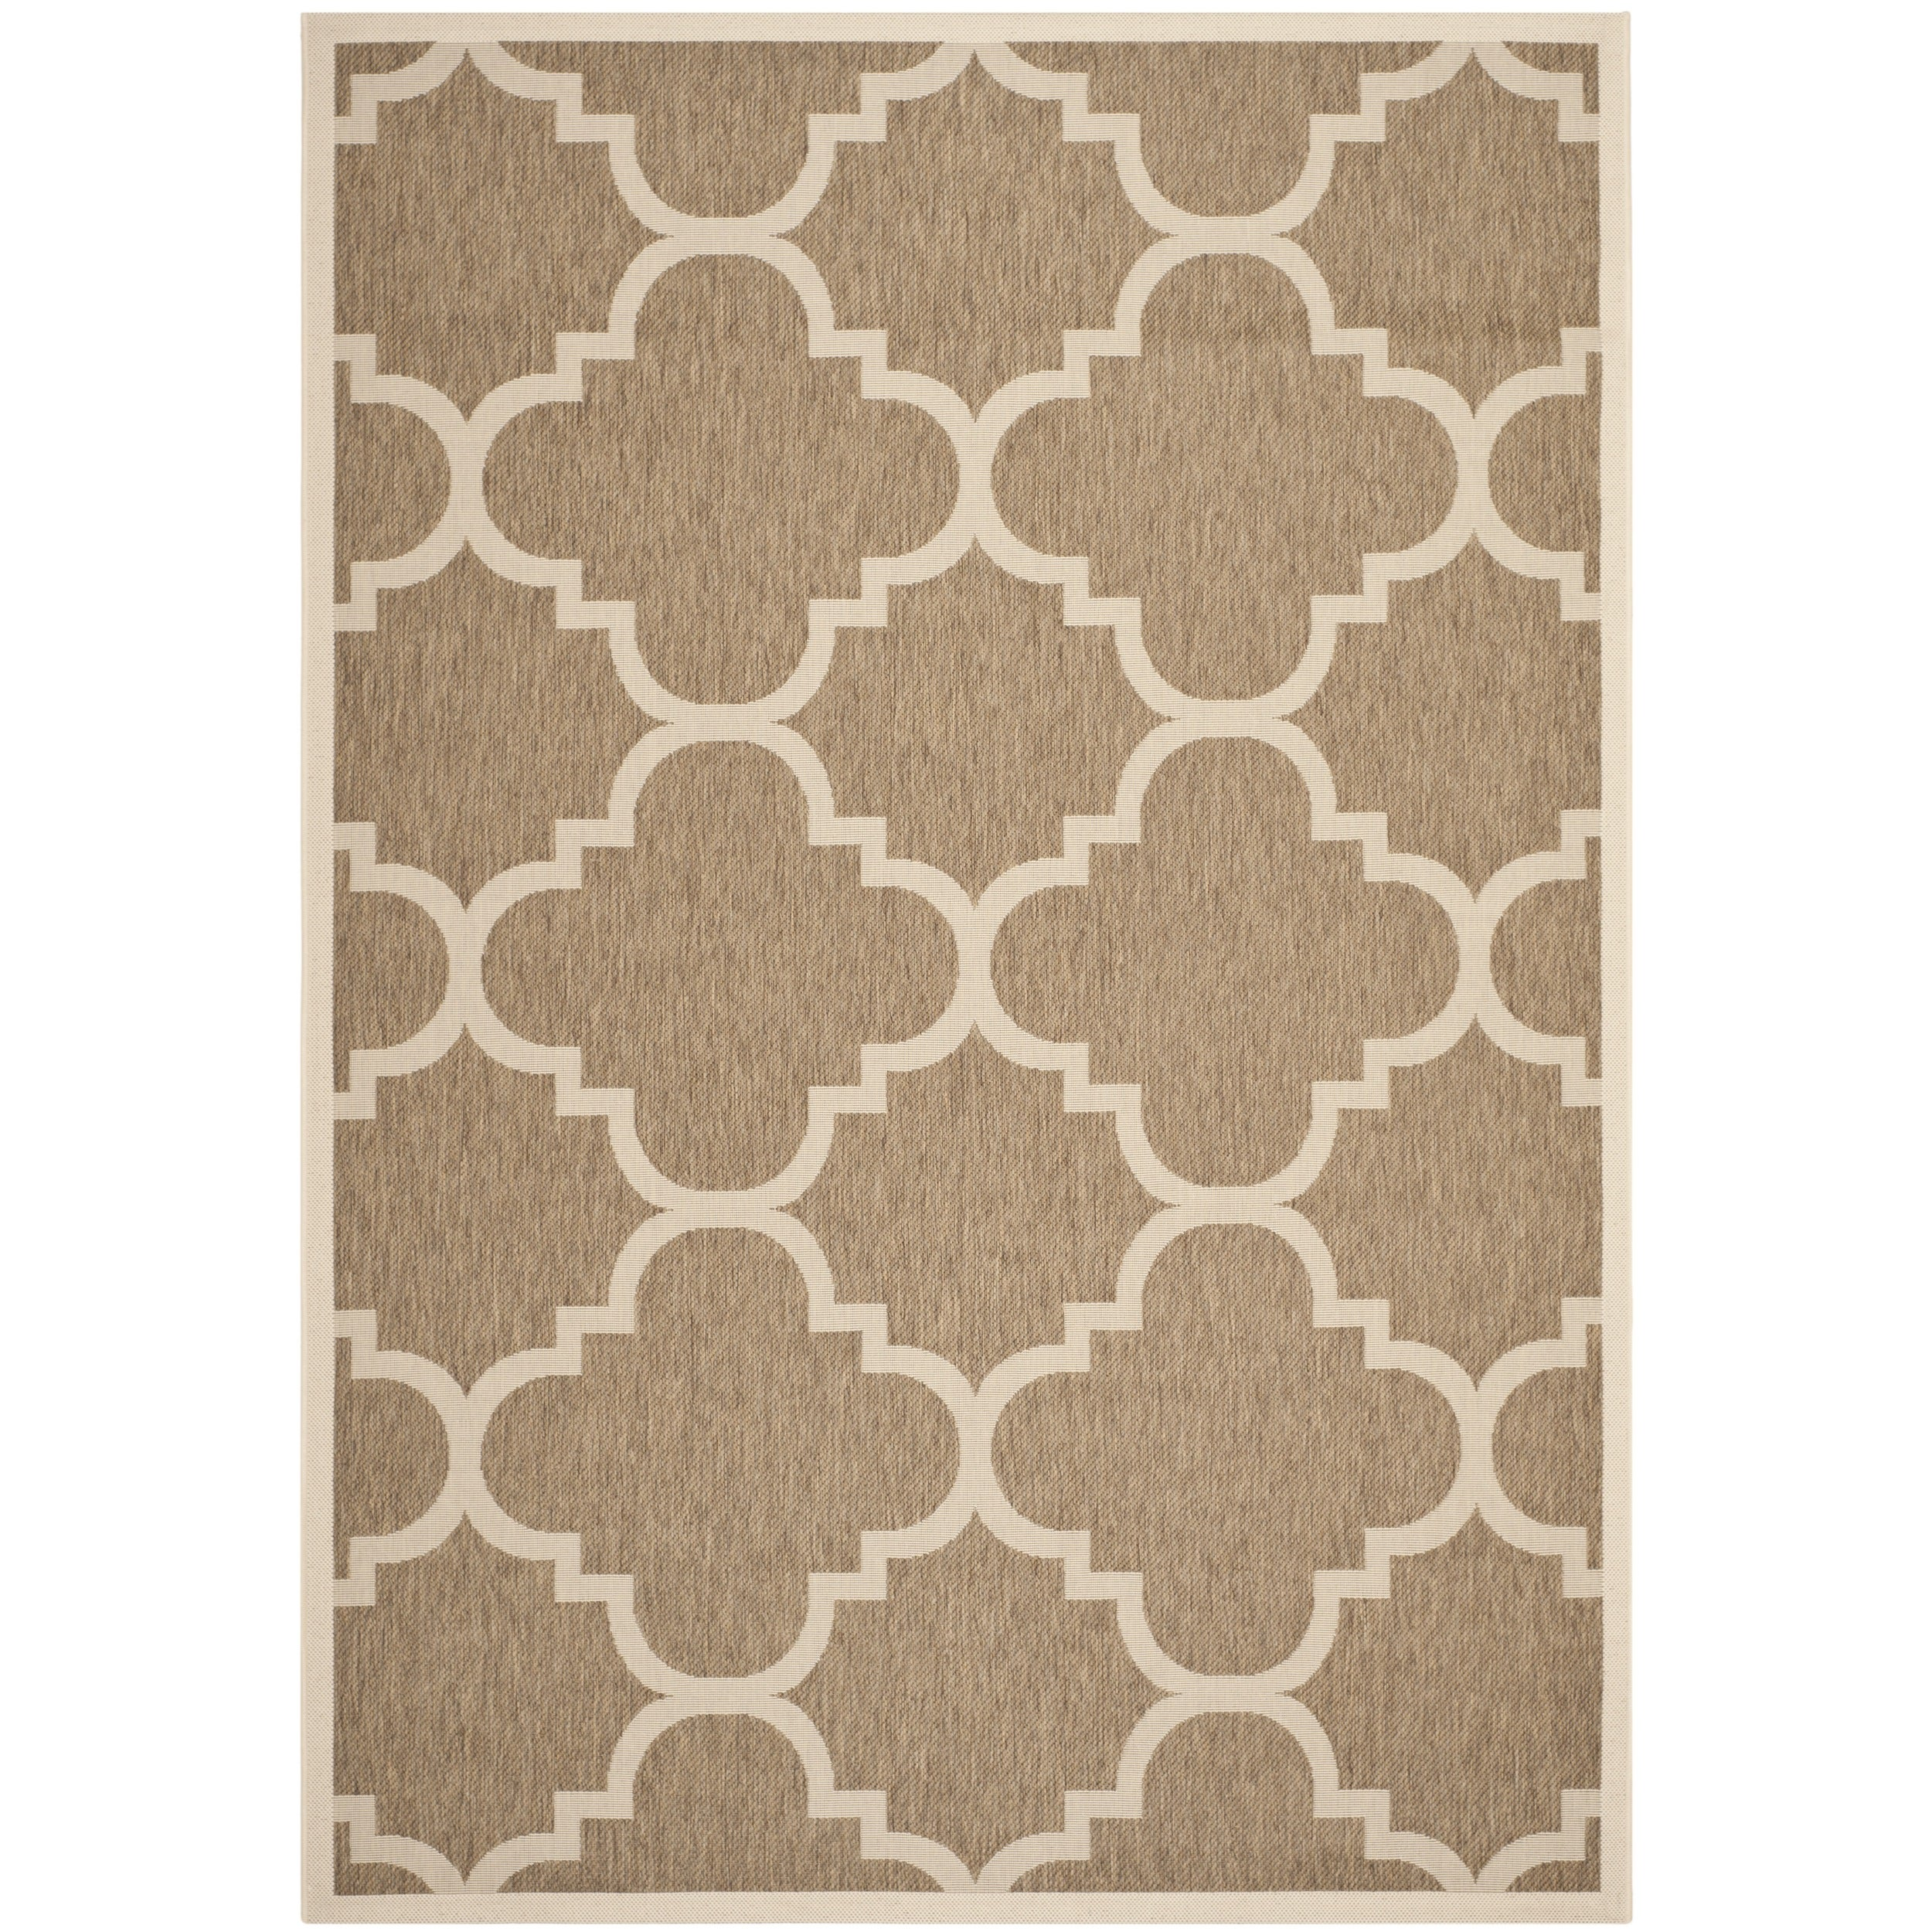 Safavieh Indoor/ Outdoor Courtyard Brown Rug (5'3 x 7'7) Safavieh 5x8   6x9 Rugs